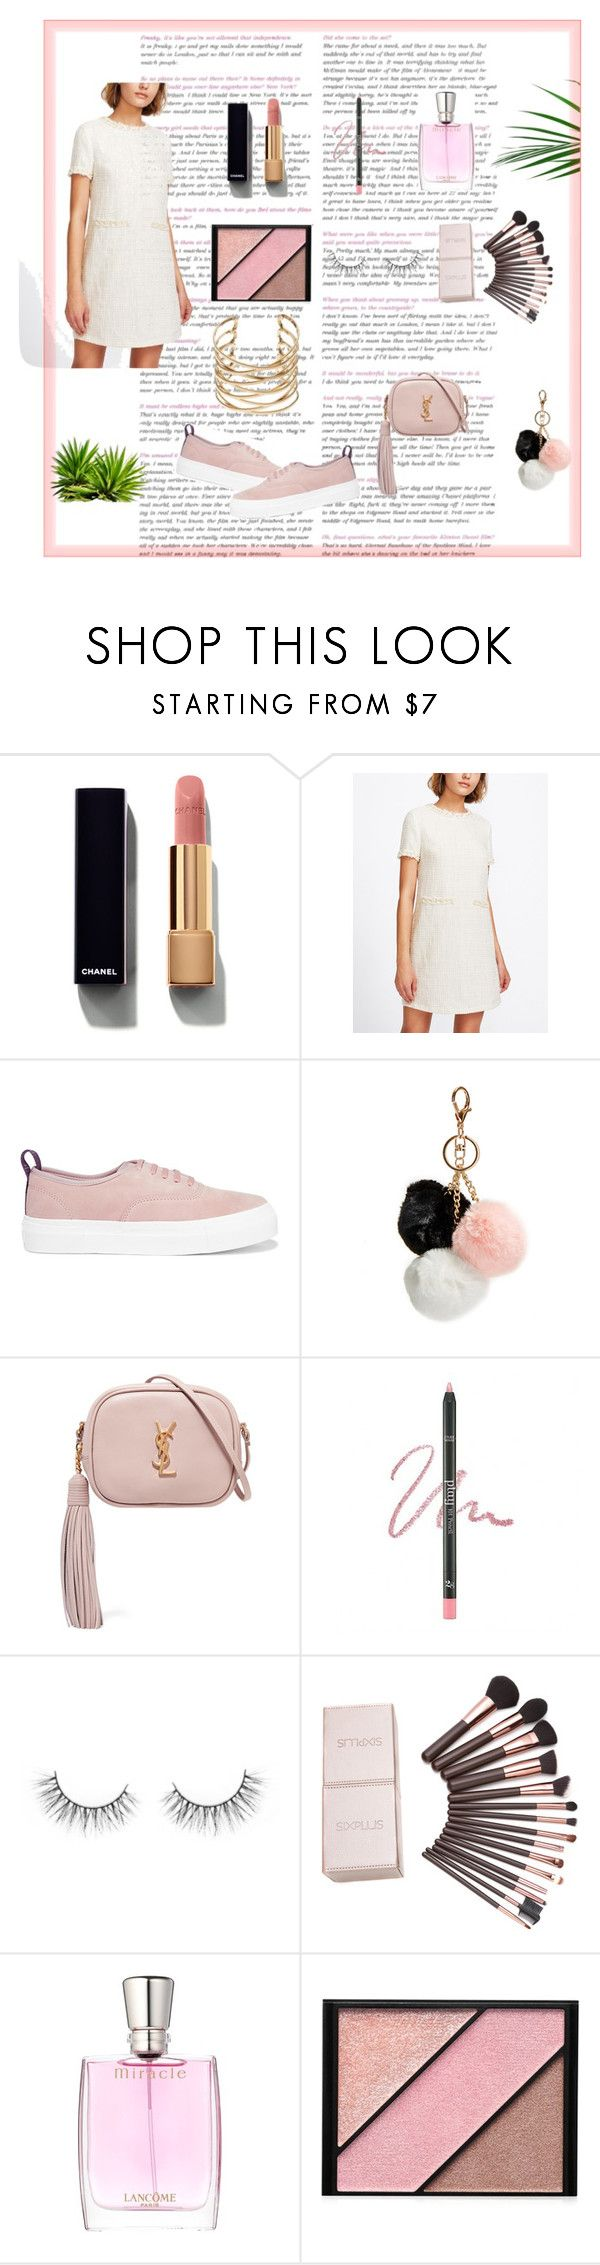 """""""pop of pink"""" by claire-166 ❤ liked on Polyvore featuring Chanel, Eytys, GUESS, Yves Saint Laurent, Etude House, Lancôme and Elizabeth Arden"""